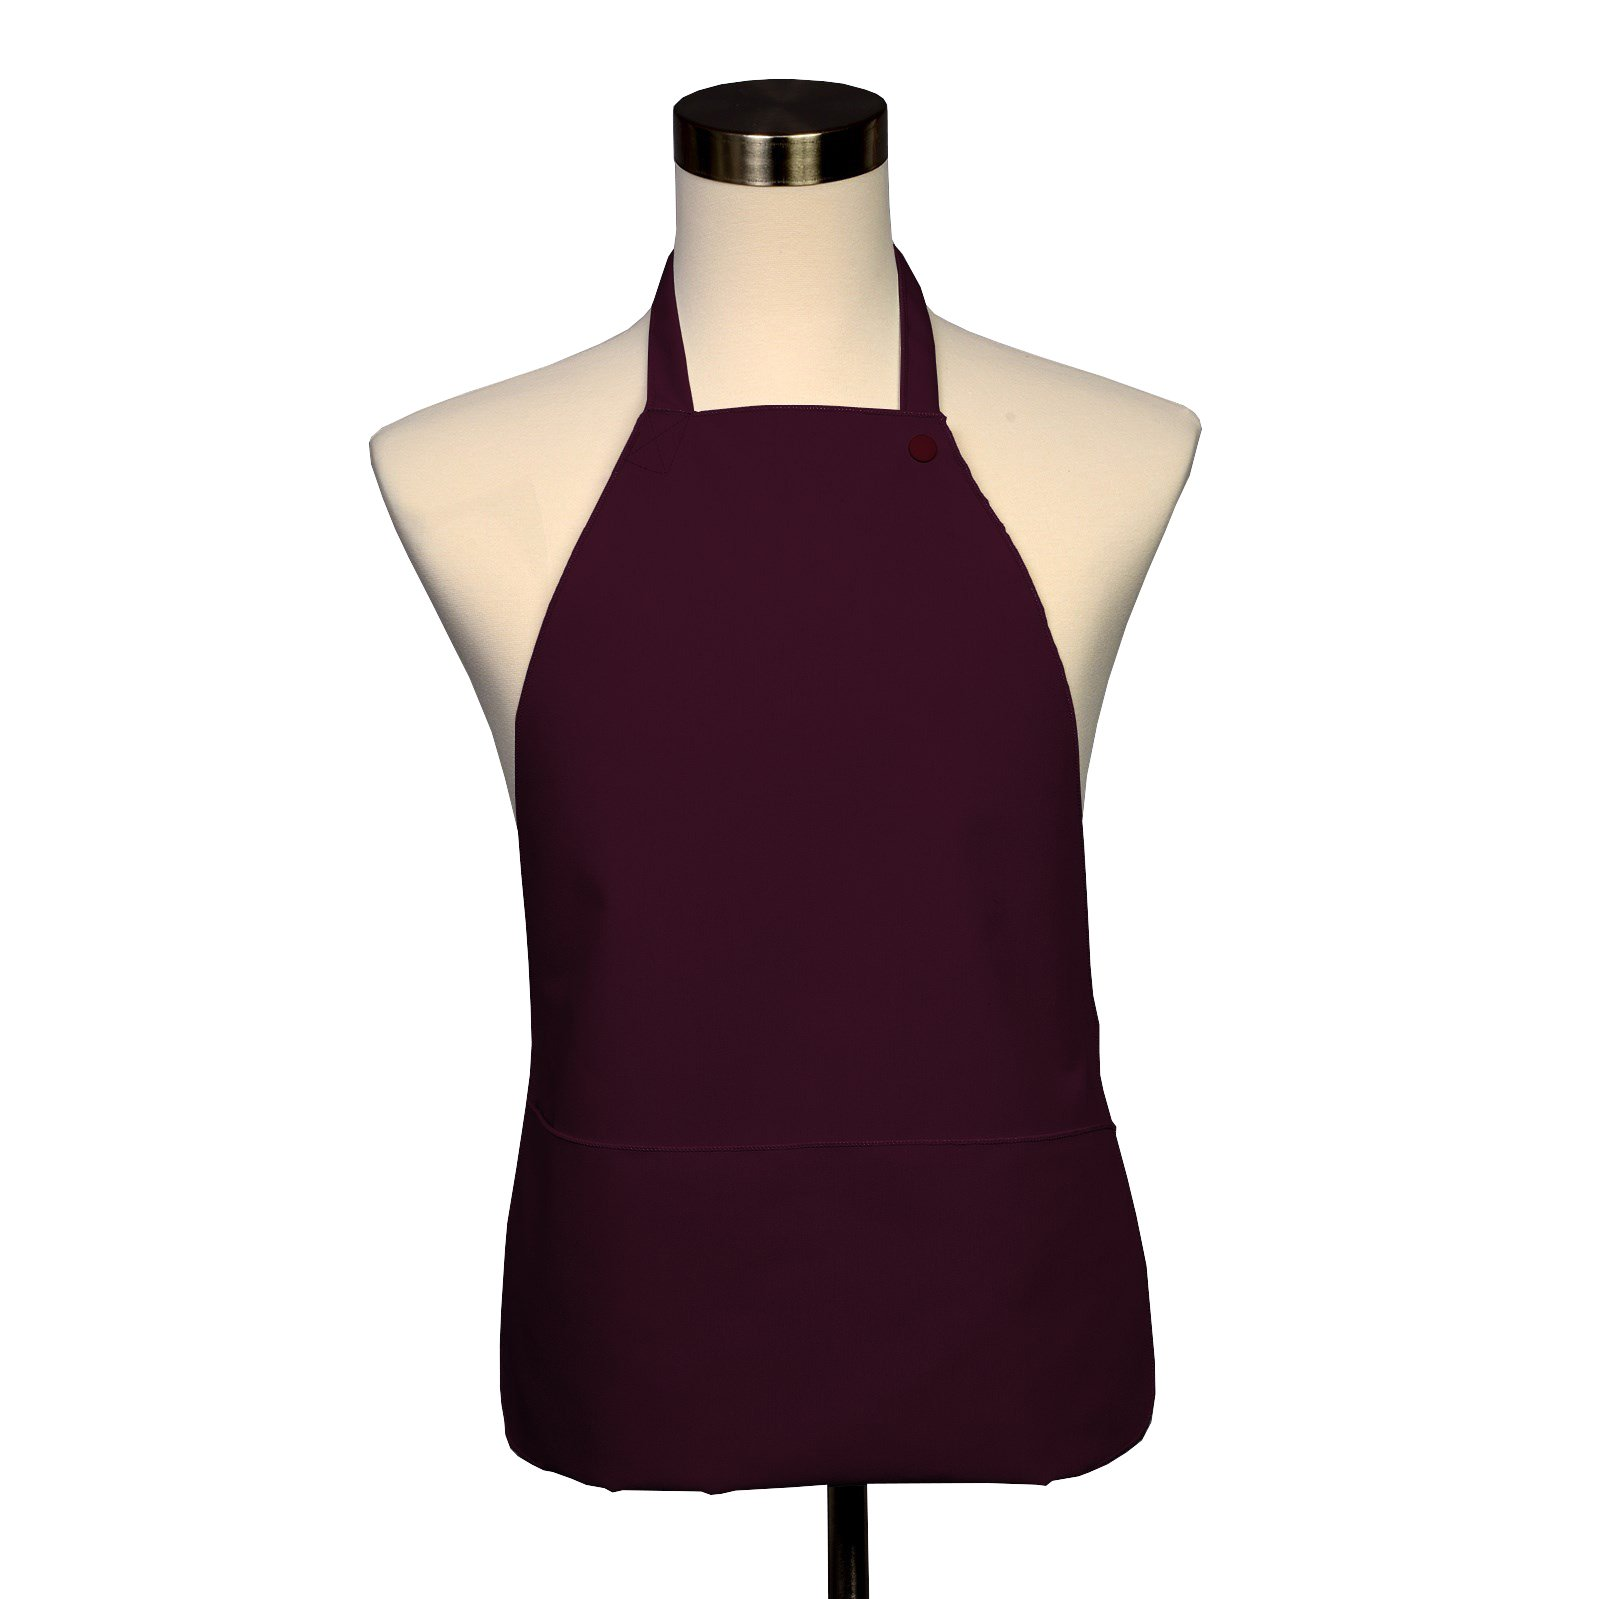 Adult Bib 10 Pack - Covered with Care Assorted Colors Available! (Burgundy)